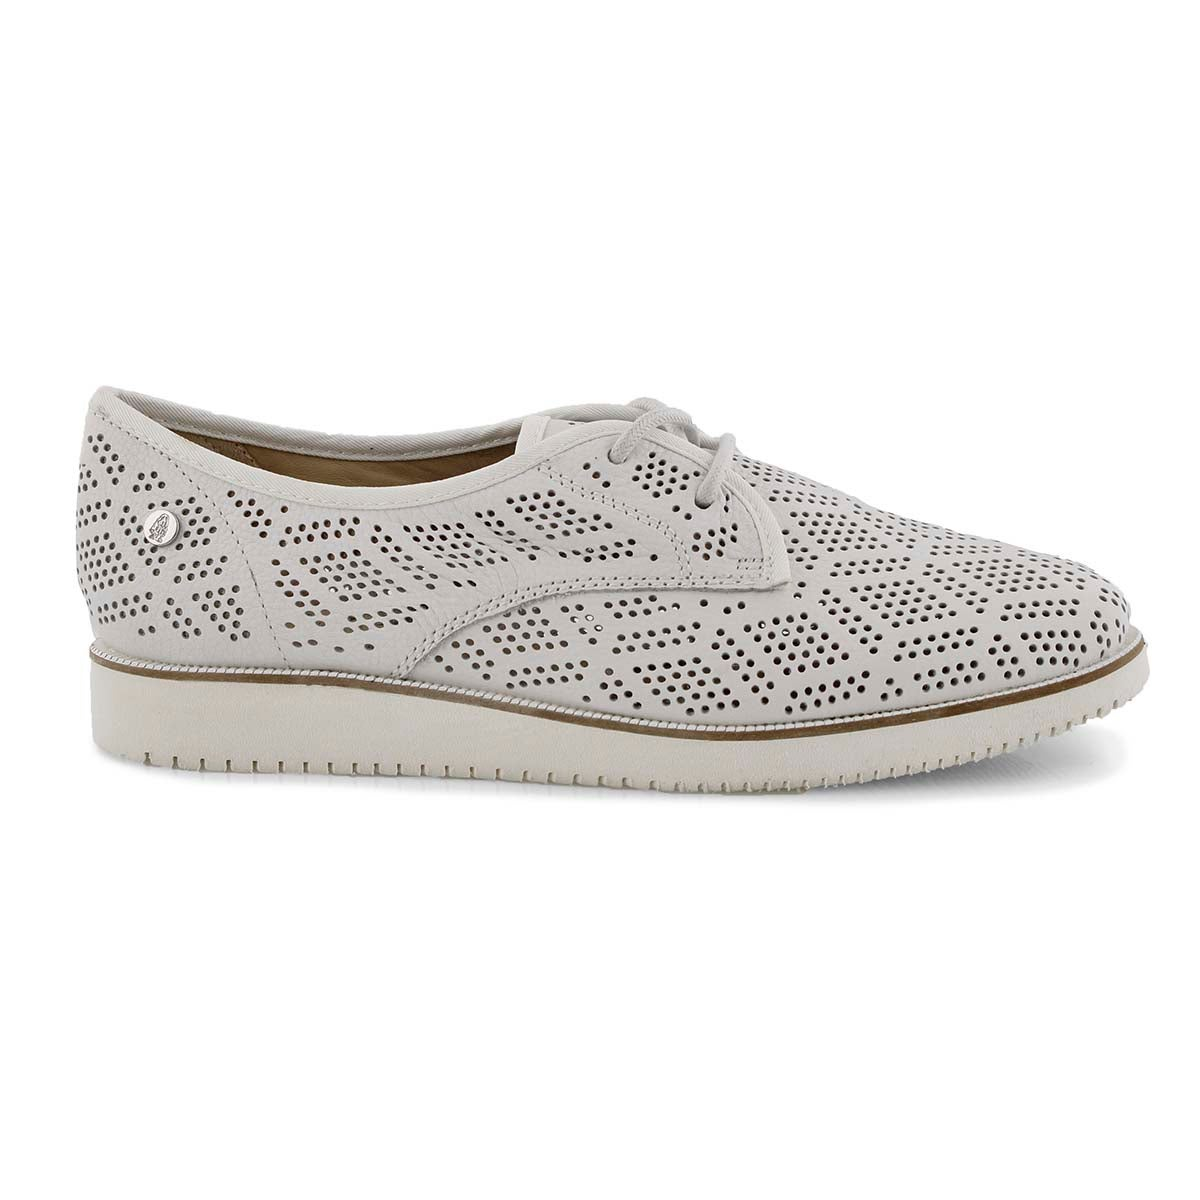 Lds Chowchow Perf Lace wht casual oxford